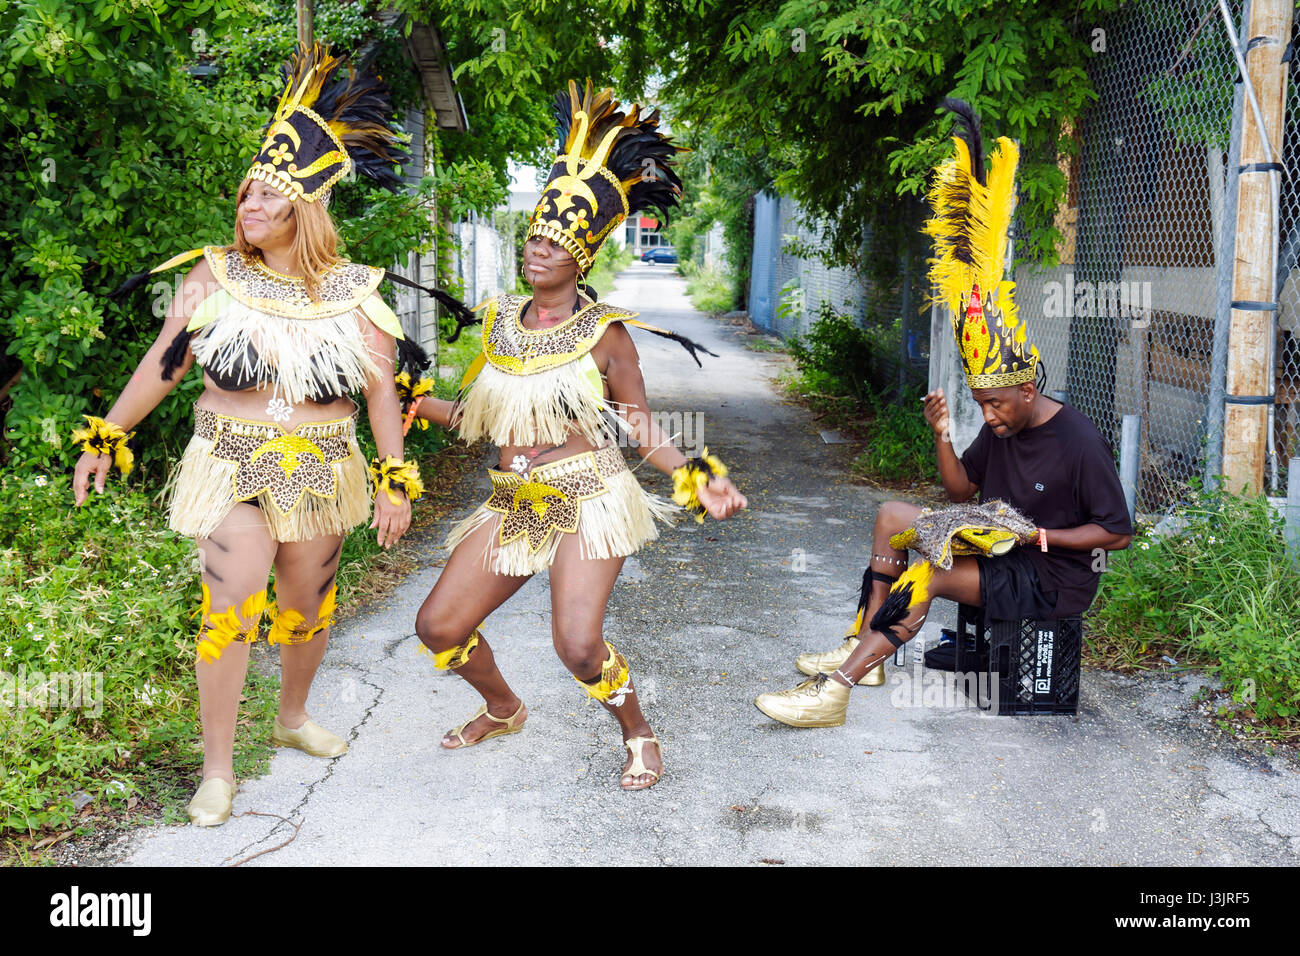 Miami Florida NE Second 2nd Avenue Miami Caribbean Carnival colorful costume festival parade Black woman women man - Stock Image